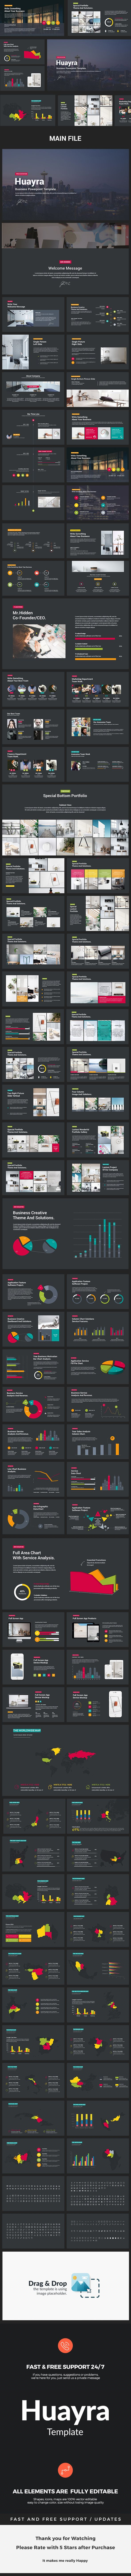 Huayra Business Powerpoint Template. Download here: https://graphicriver.net/item/huayra-business-powerpoint-template/17535106?ref=ksioks